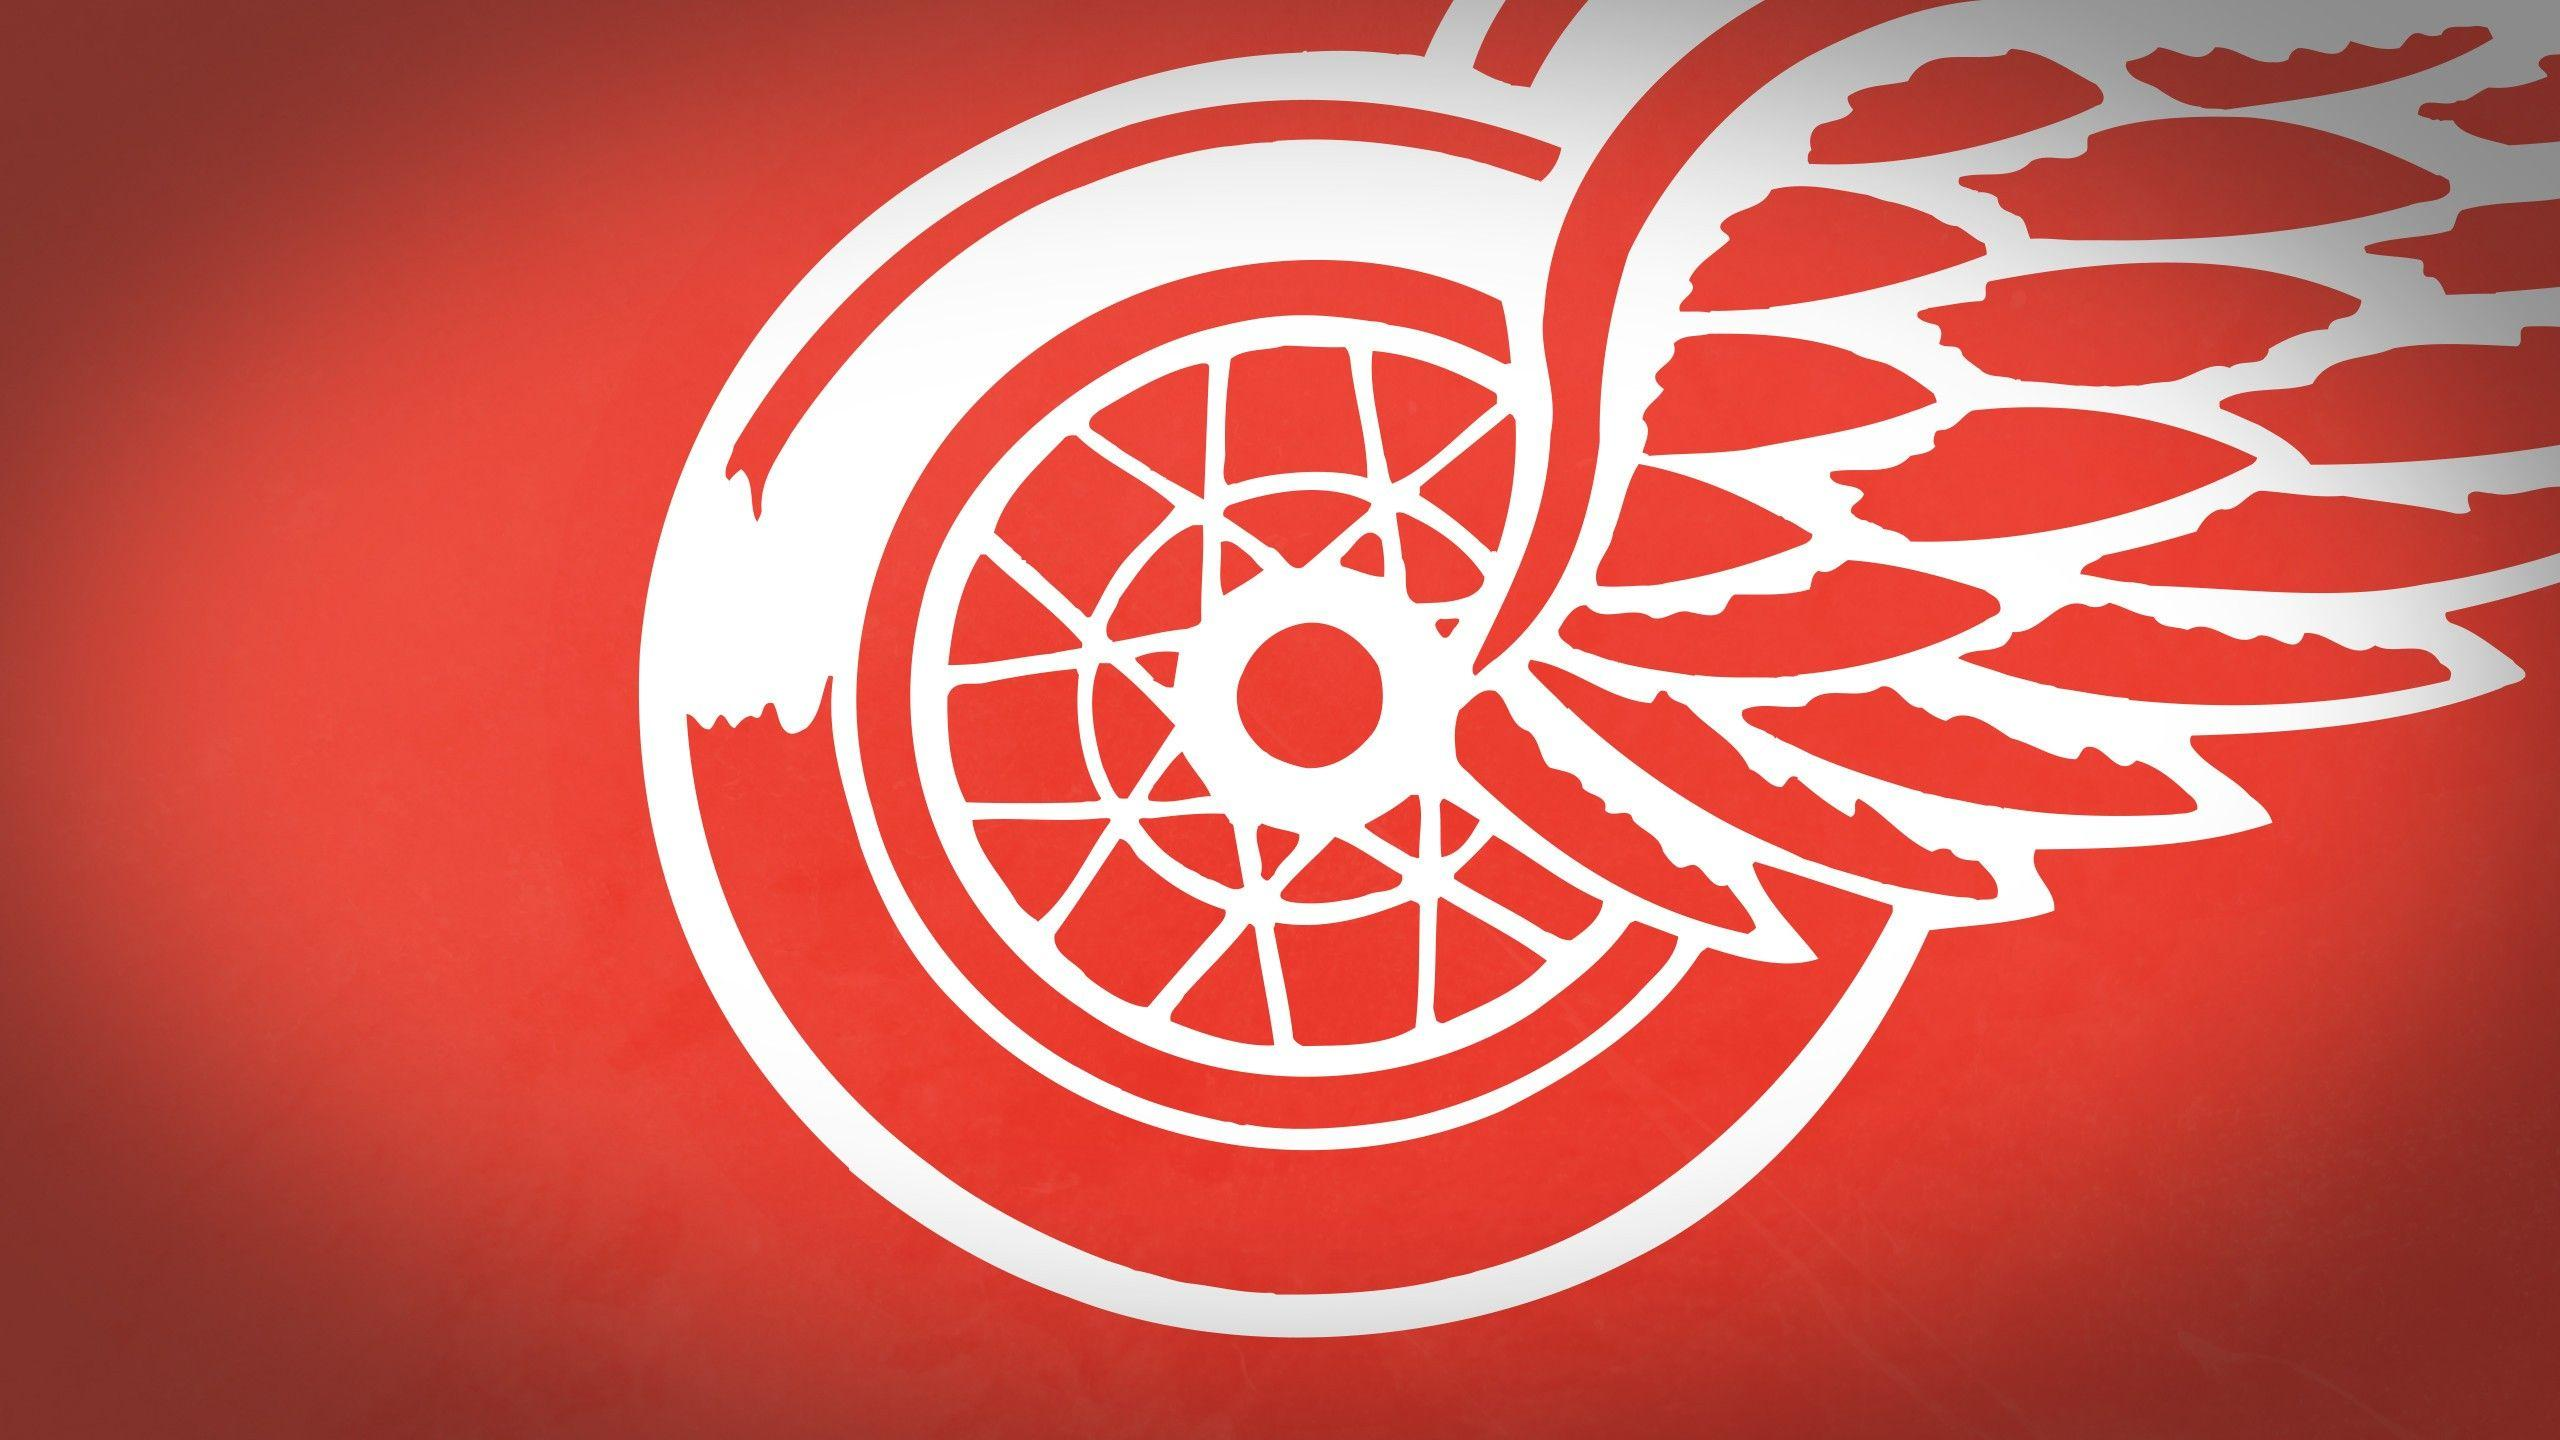 Detroit Red Wings Wallpapers, HD Image Detroit Red Wings